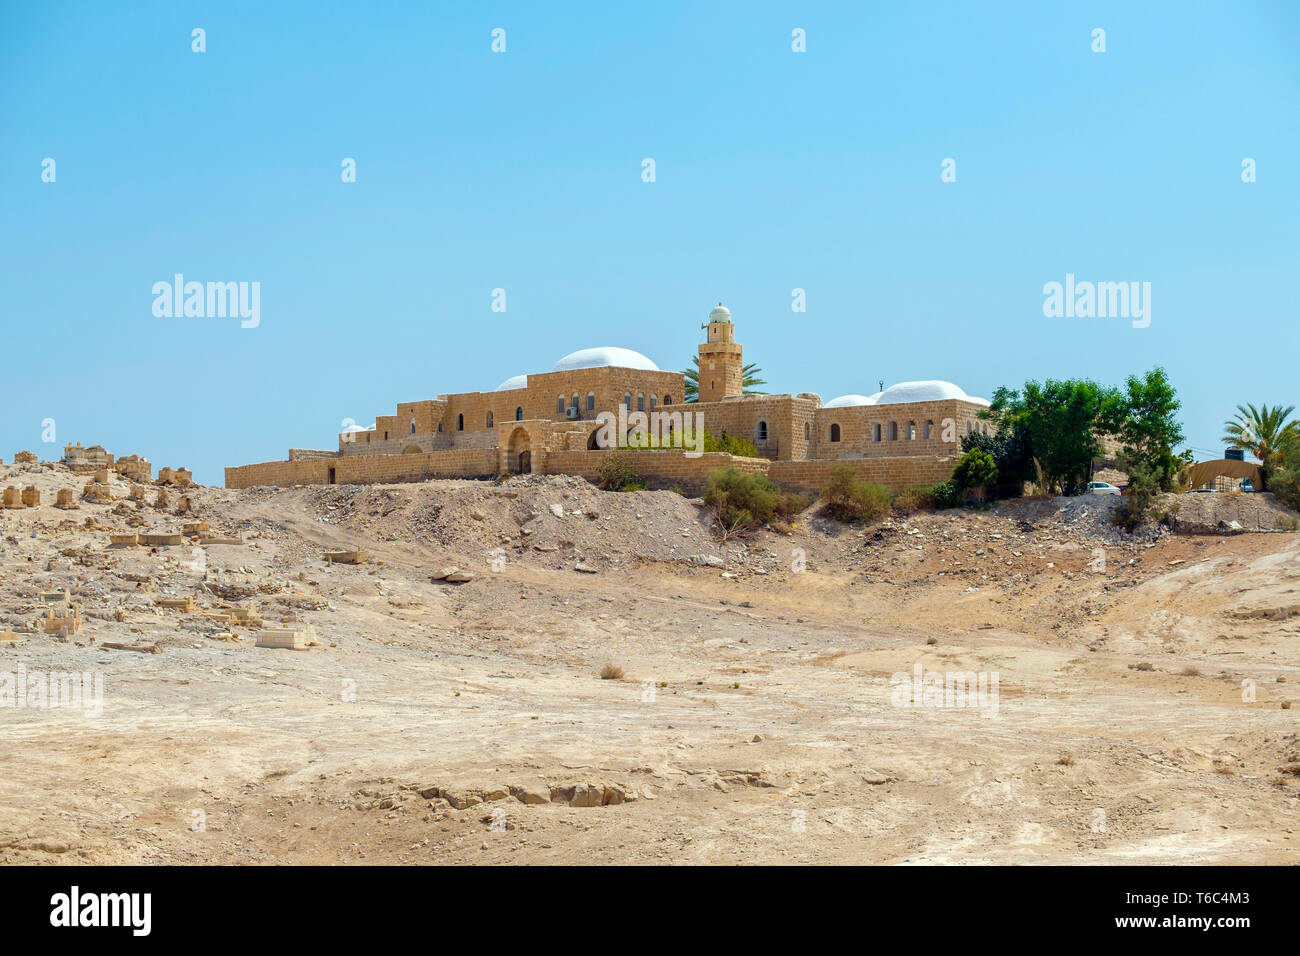 Palestine, West Bank, Jericho. Maqam (shrine) of an-Nabi Musa, believed to be the tomb of the prophet Moses in Muslim tradition. - Stock Image